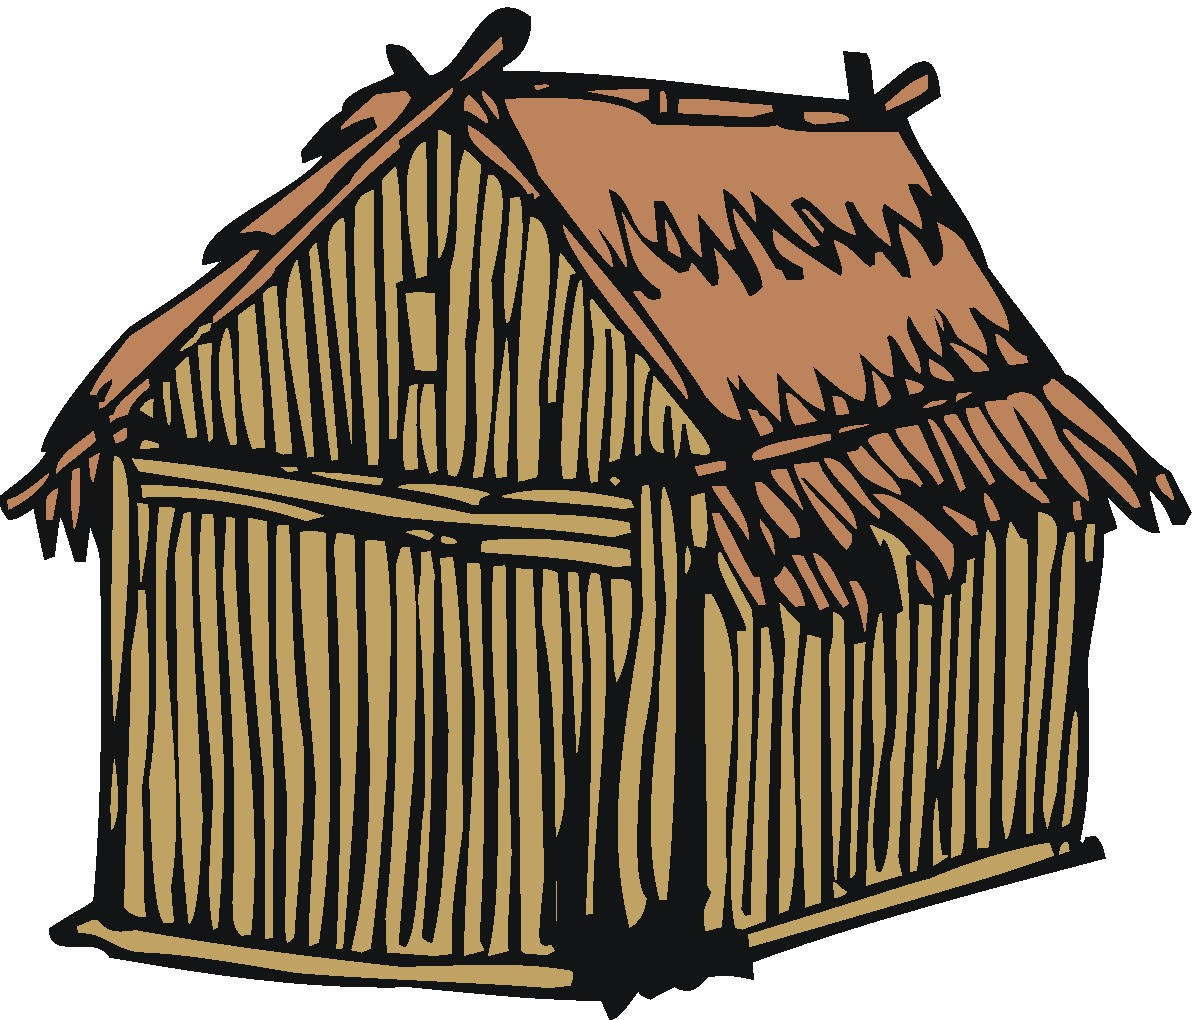 clip royalty free Hut clipart desert house. Free clip art library